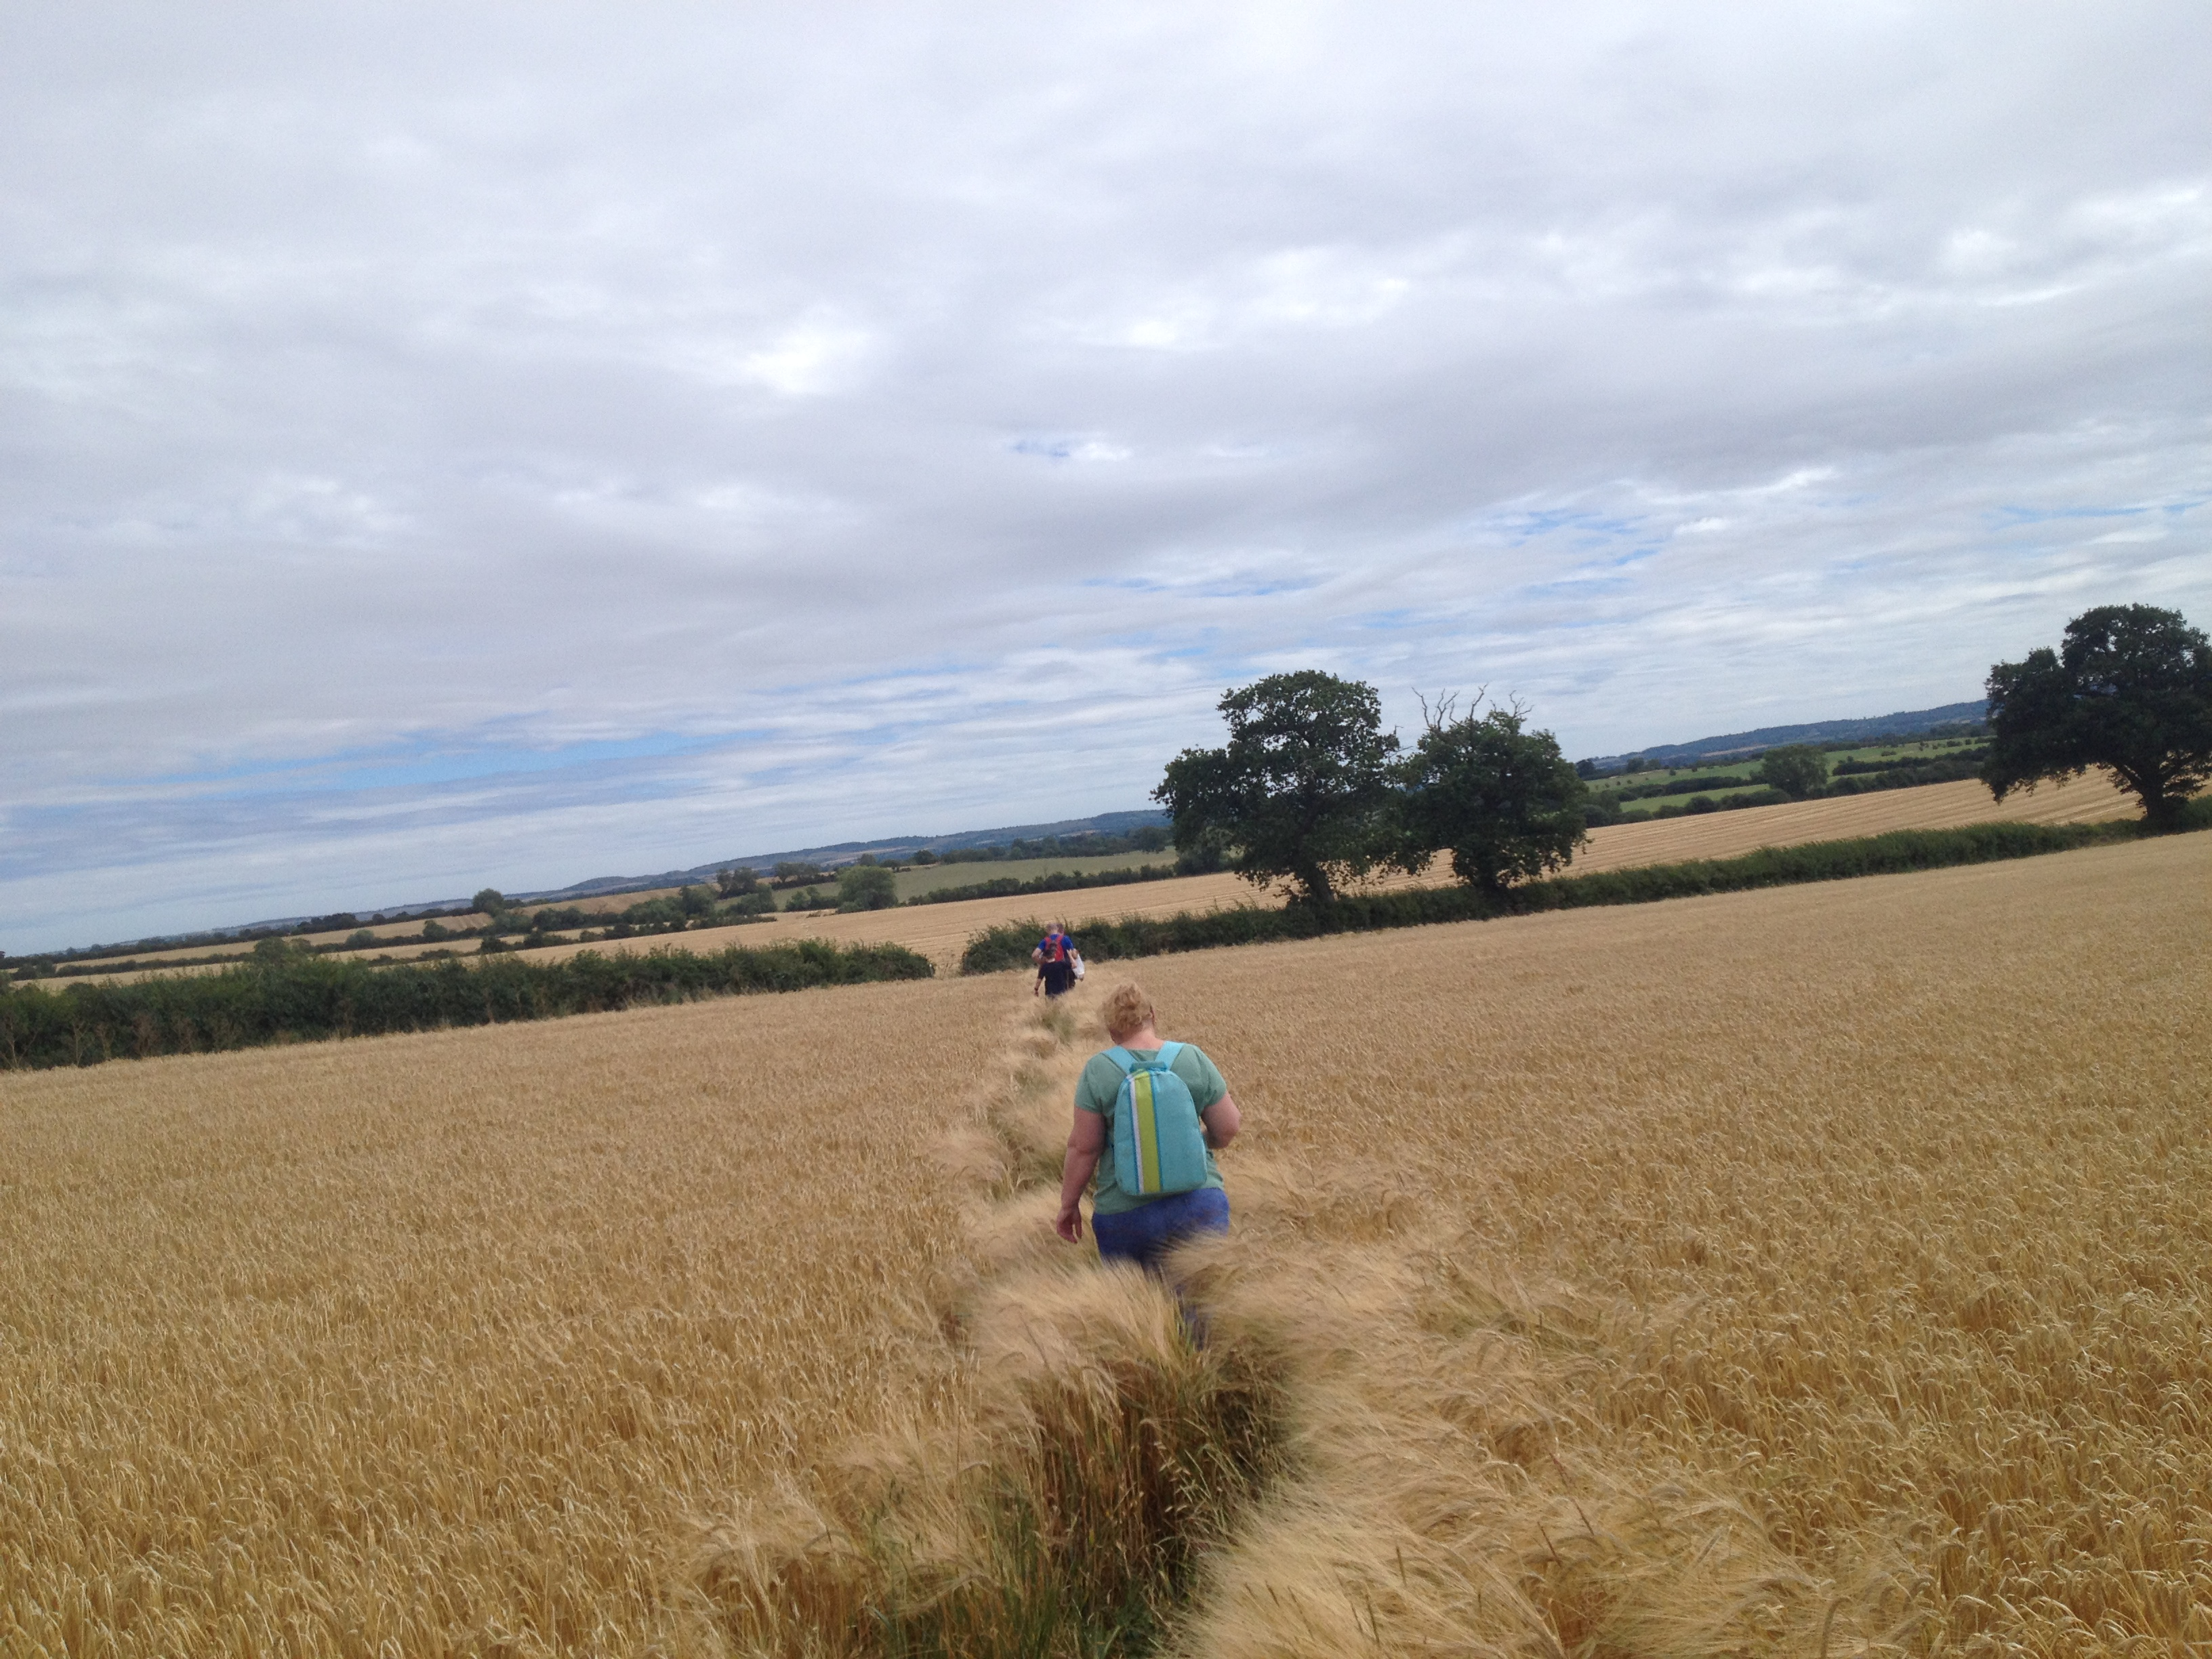 2015-08-09-widgeon-07-shar-sam-geoff-and-graham-walking-through-crop-field-into-the-distance